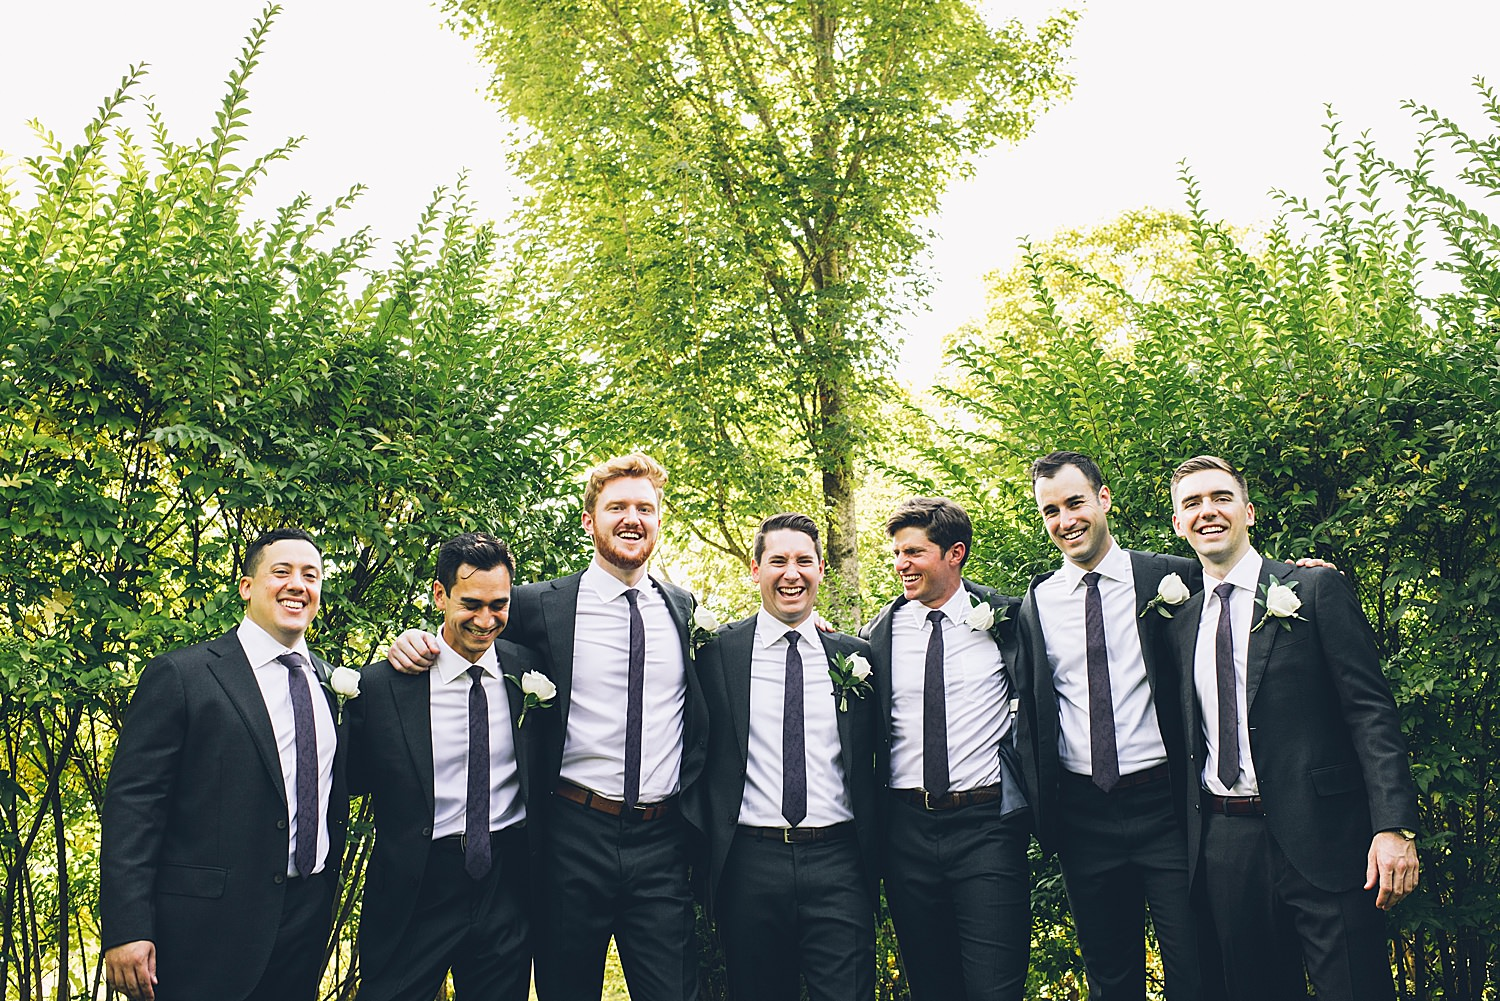 groom with all his grooms men